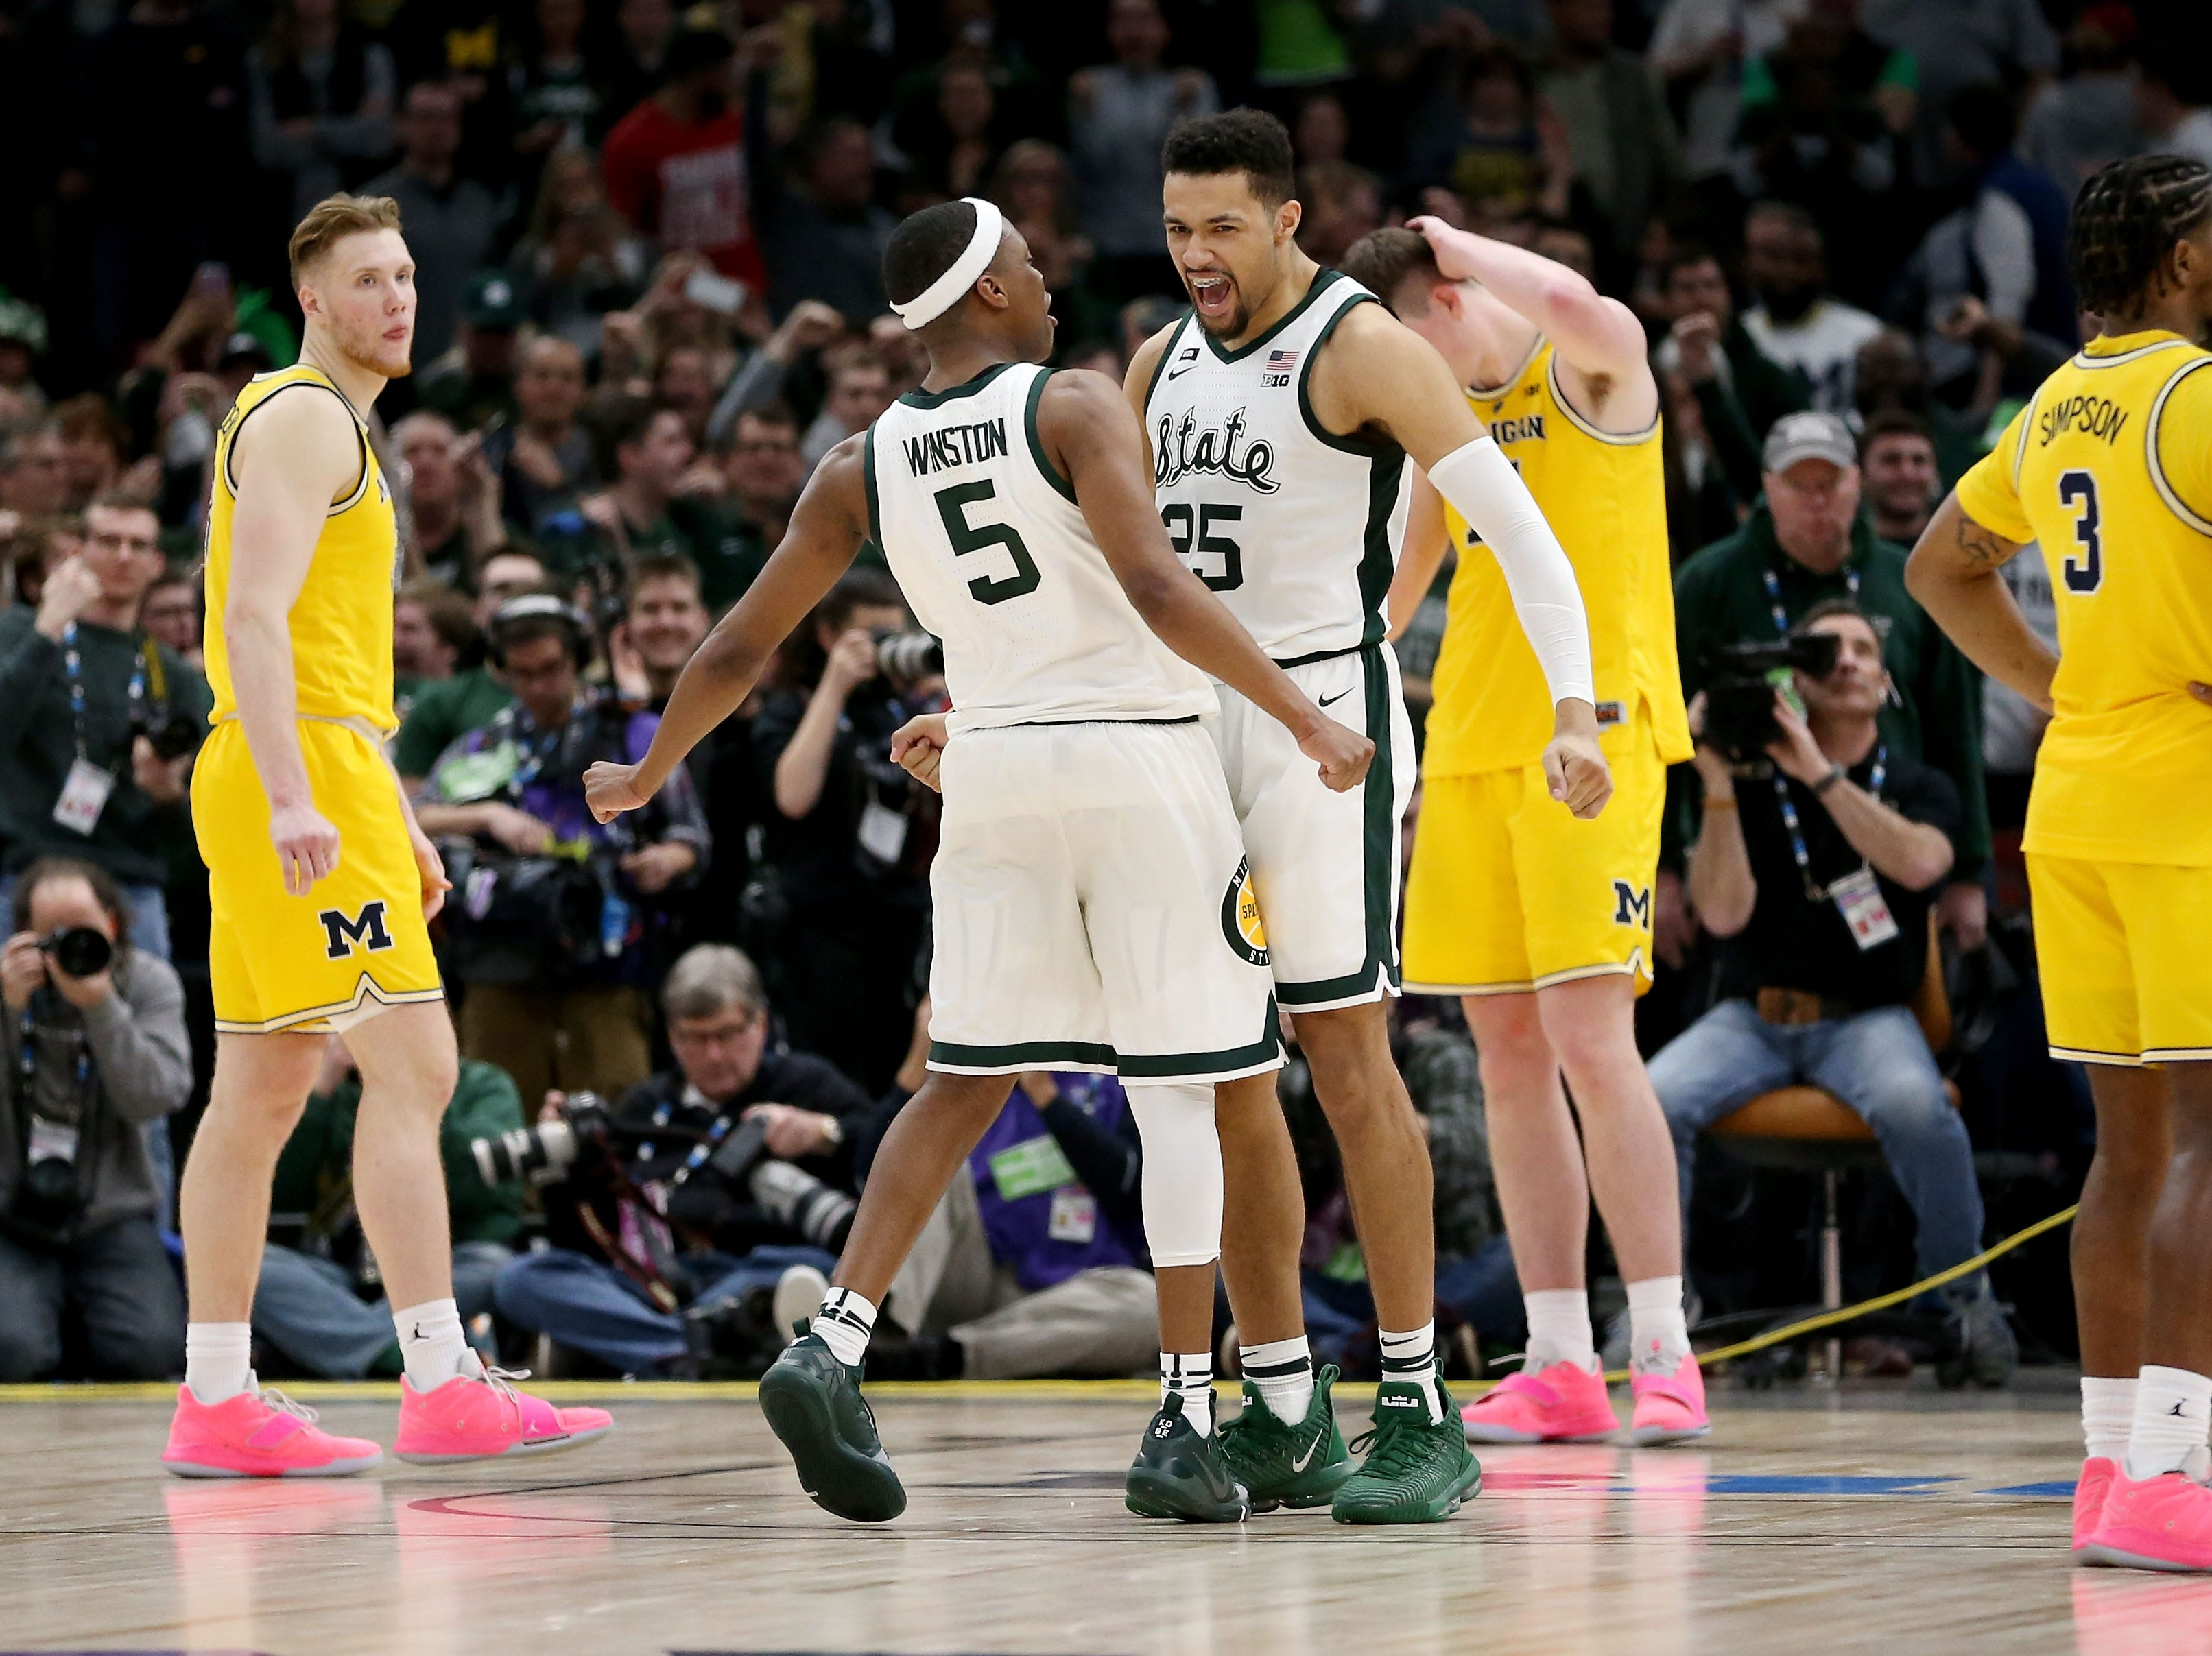 Cassius Winston #5 and Kenny Goins #25 of the Michigan State Spartans celebrate in the second half against the Michigan Wolverines during the championship game of the Big Ten Basketball Tournament at the United Center on March 17, 2019 in Chicago, Illinois.